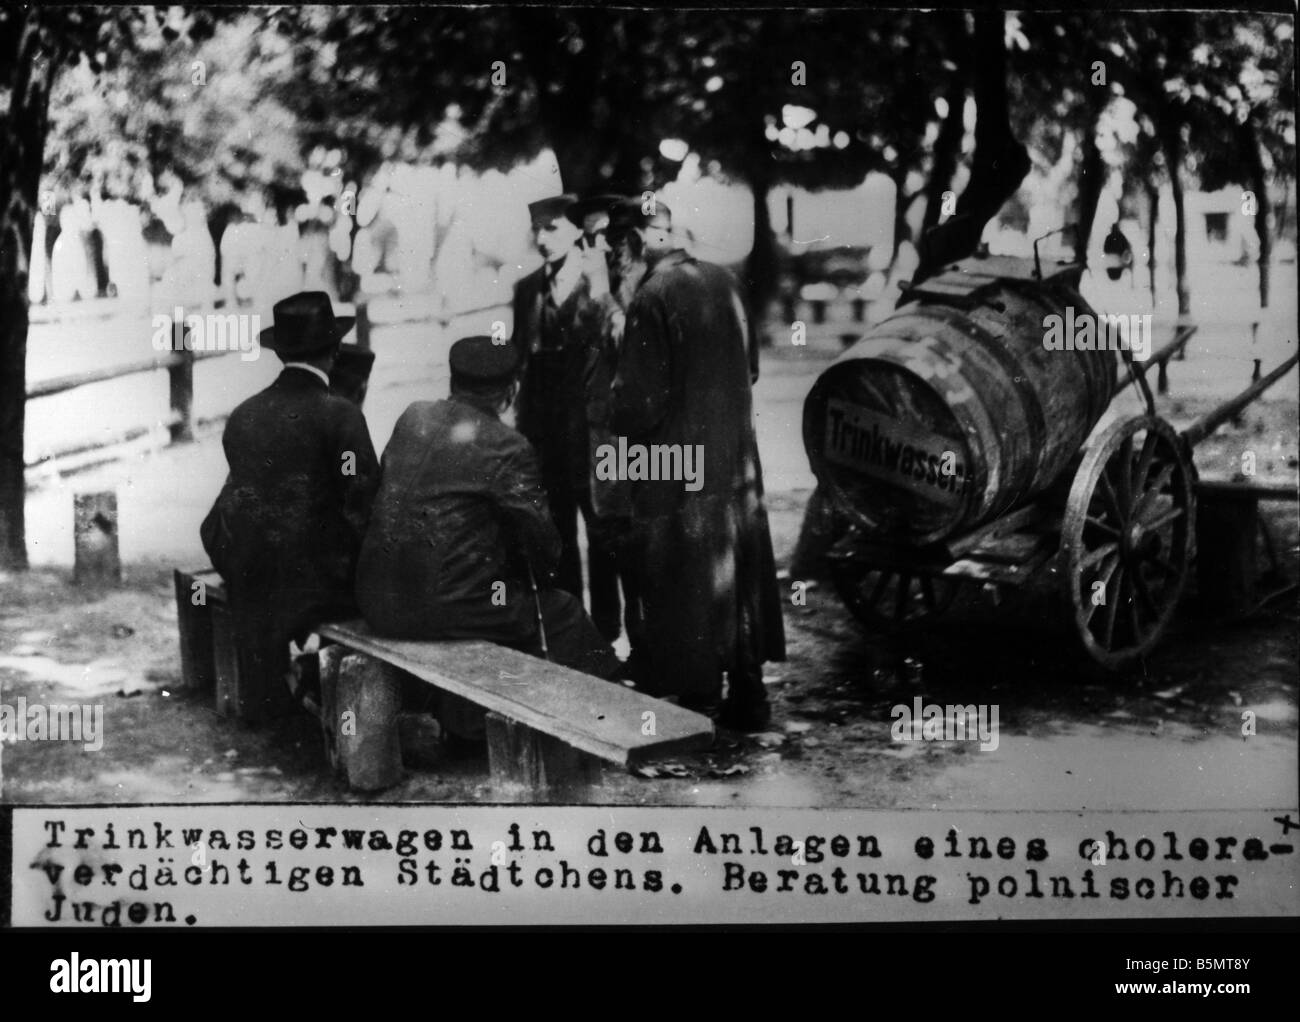 9IS 1915 0 0 A1 56 Drinking water cont a Jews Photo 1915 History of Judaism Eastern Jews Drinking water container - Stock Image